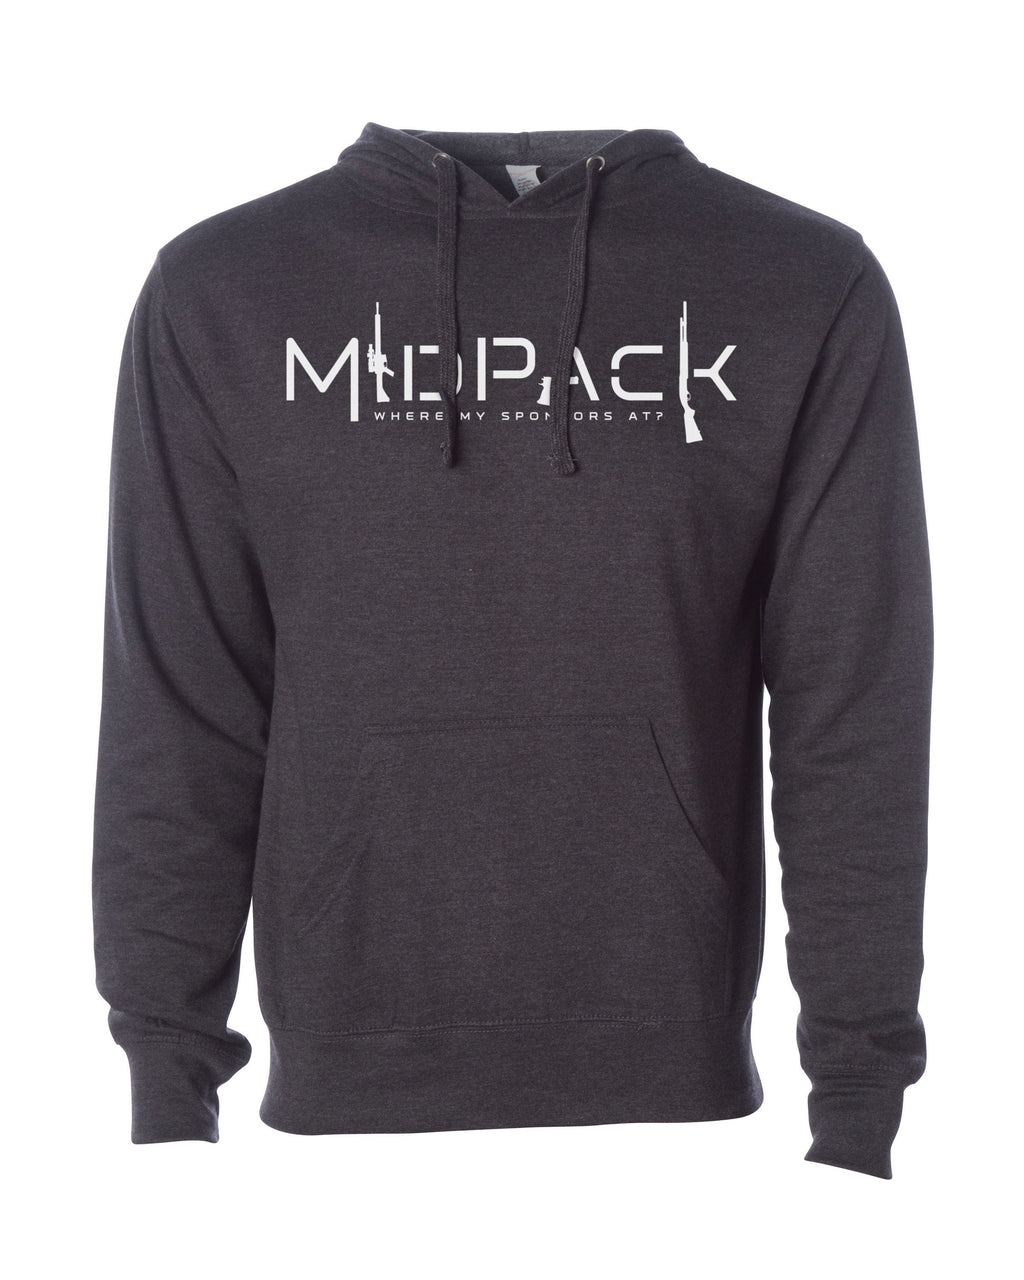 Men's Hoodie - Mid Pack Where My Sponsors At?